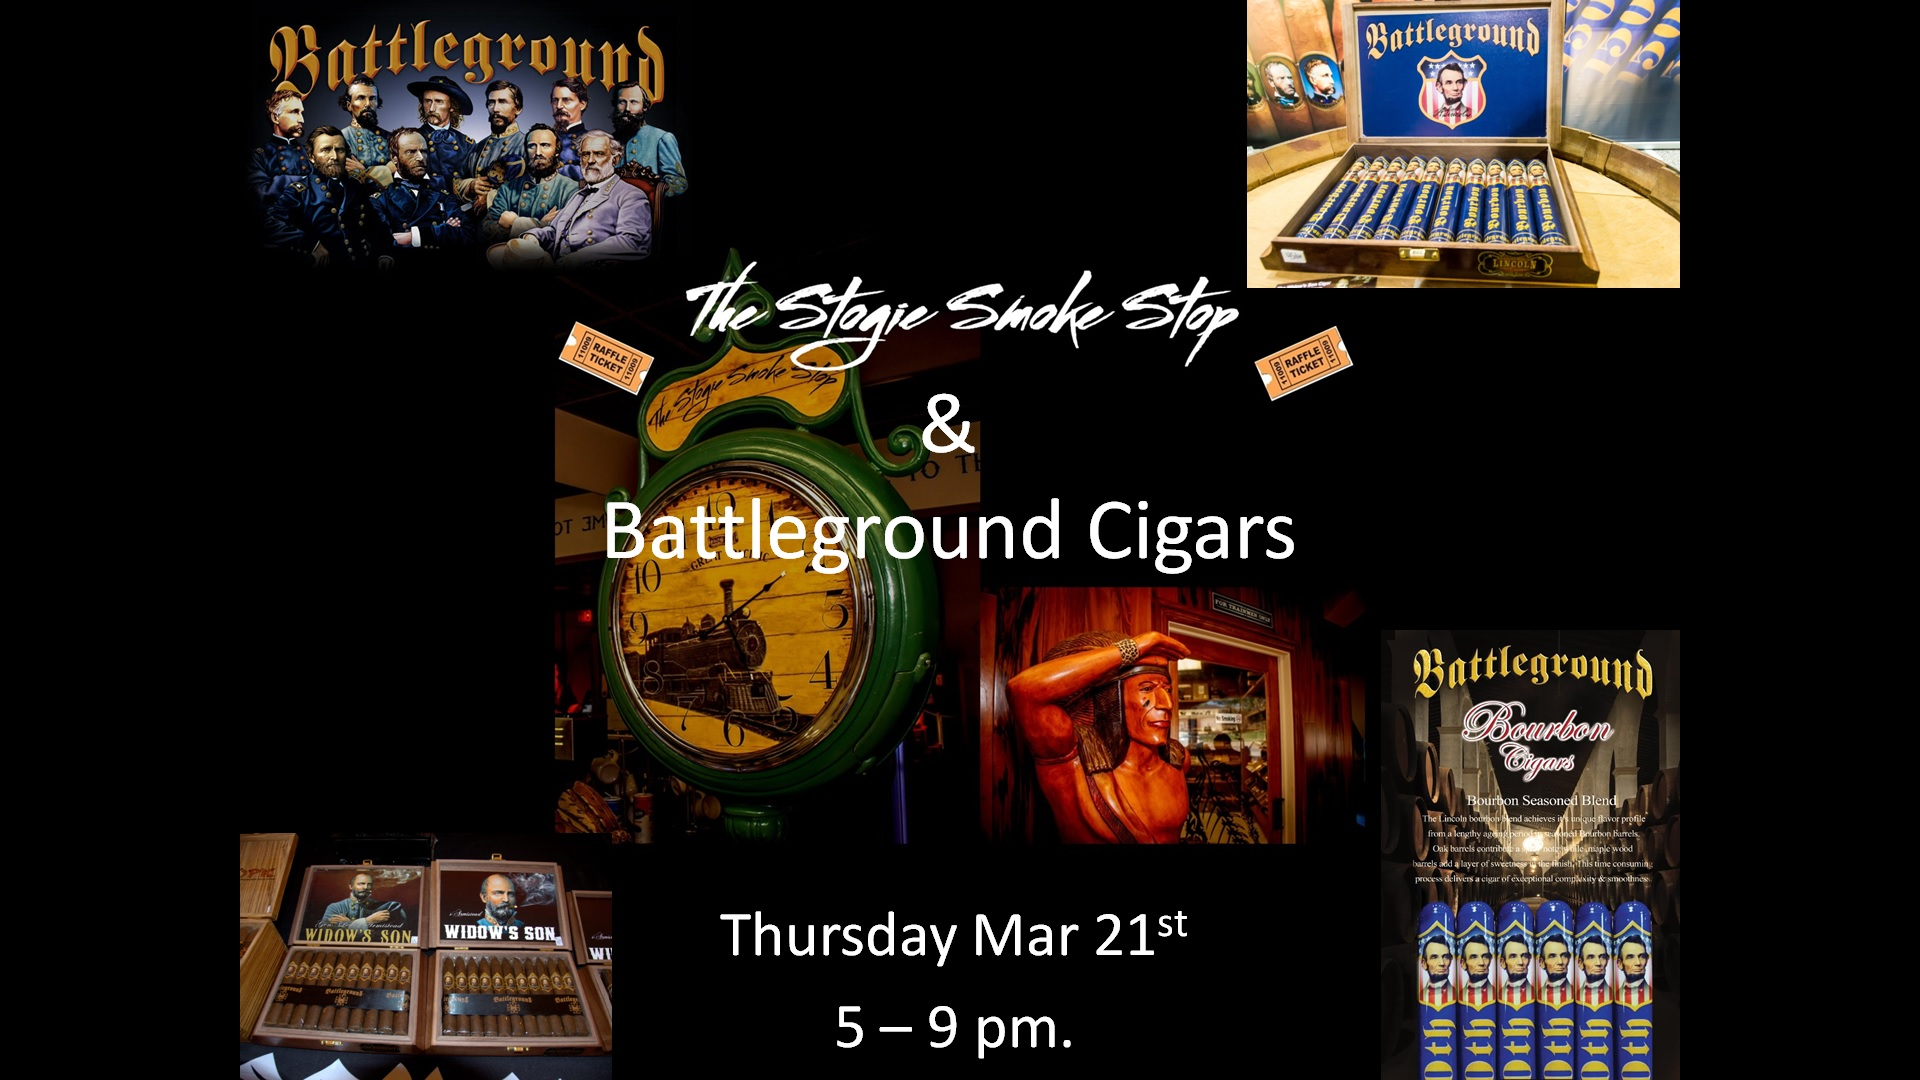 Battleground Cigar Event Thur. March 21st 5 - 9 pm